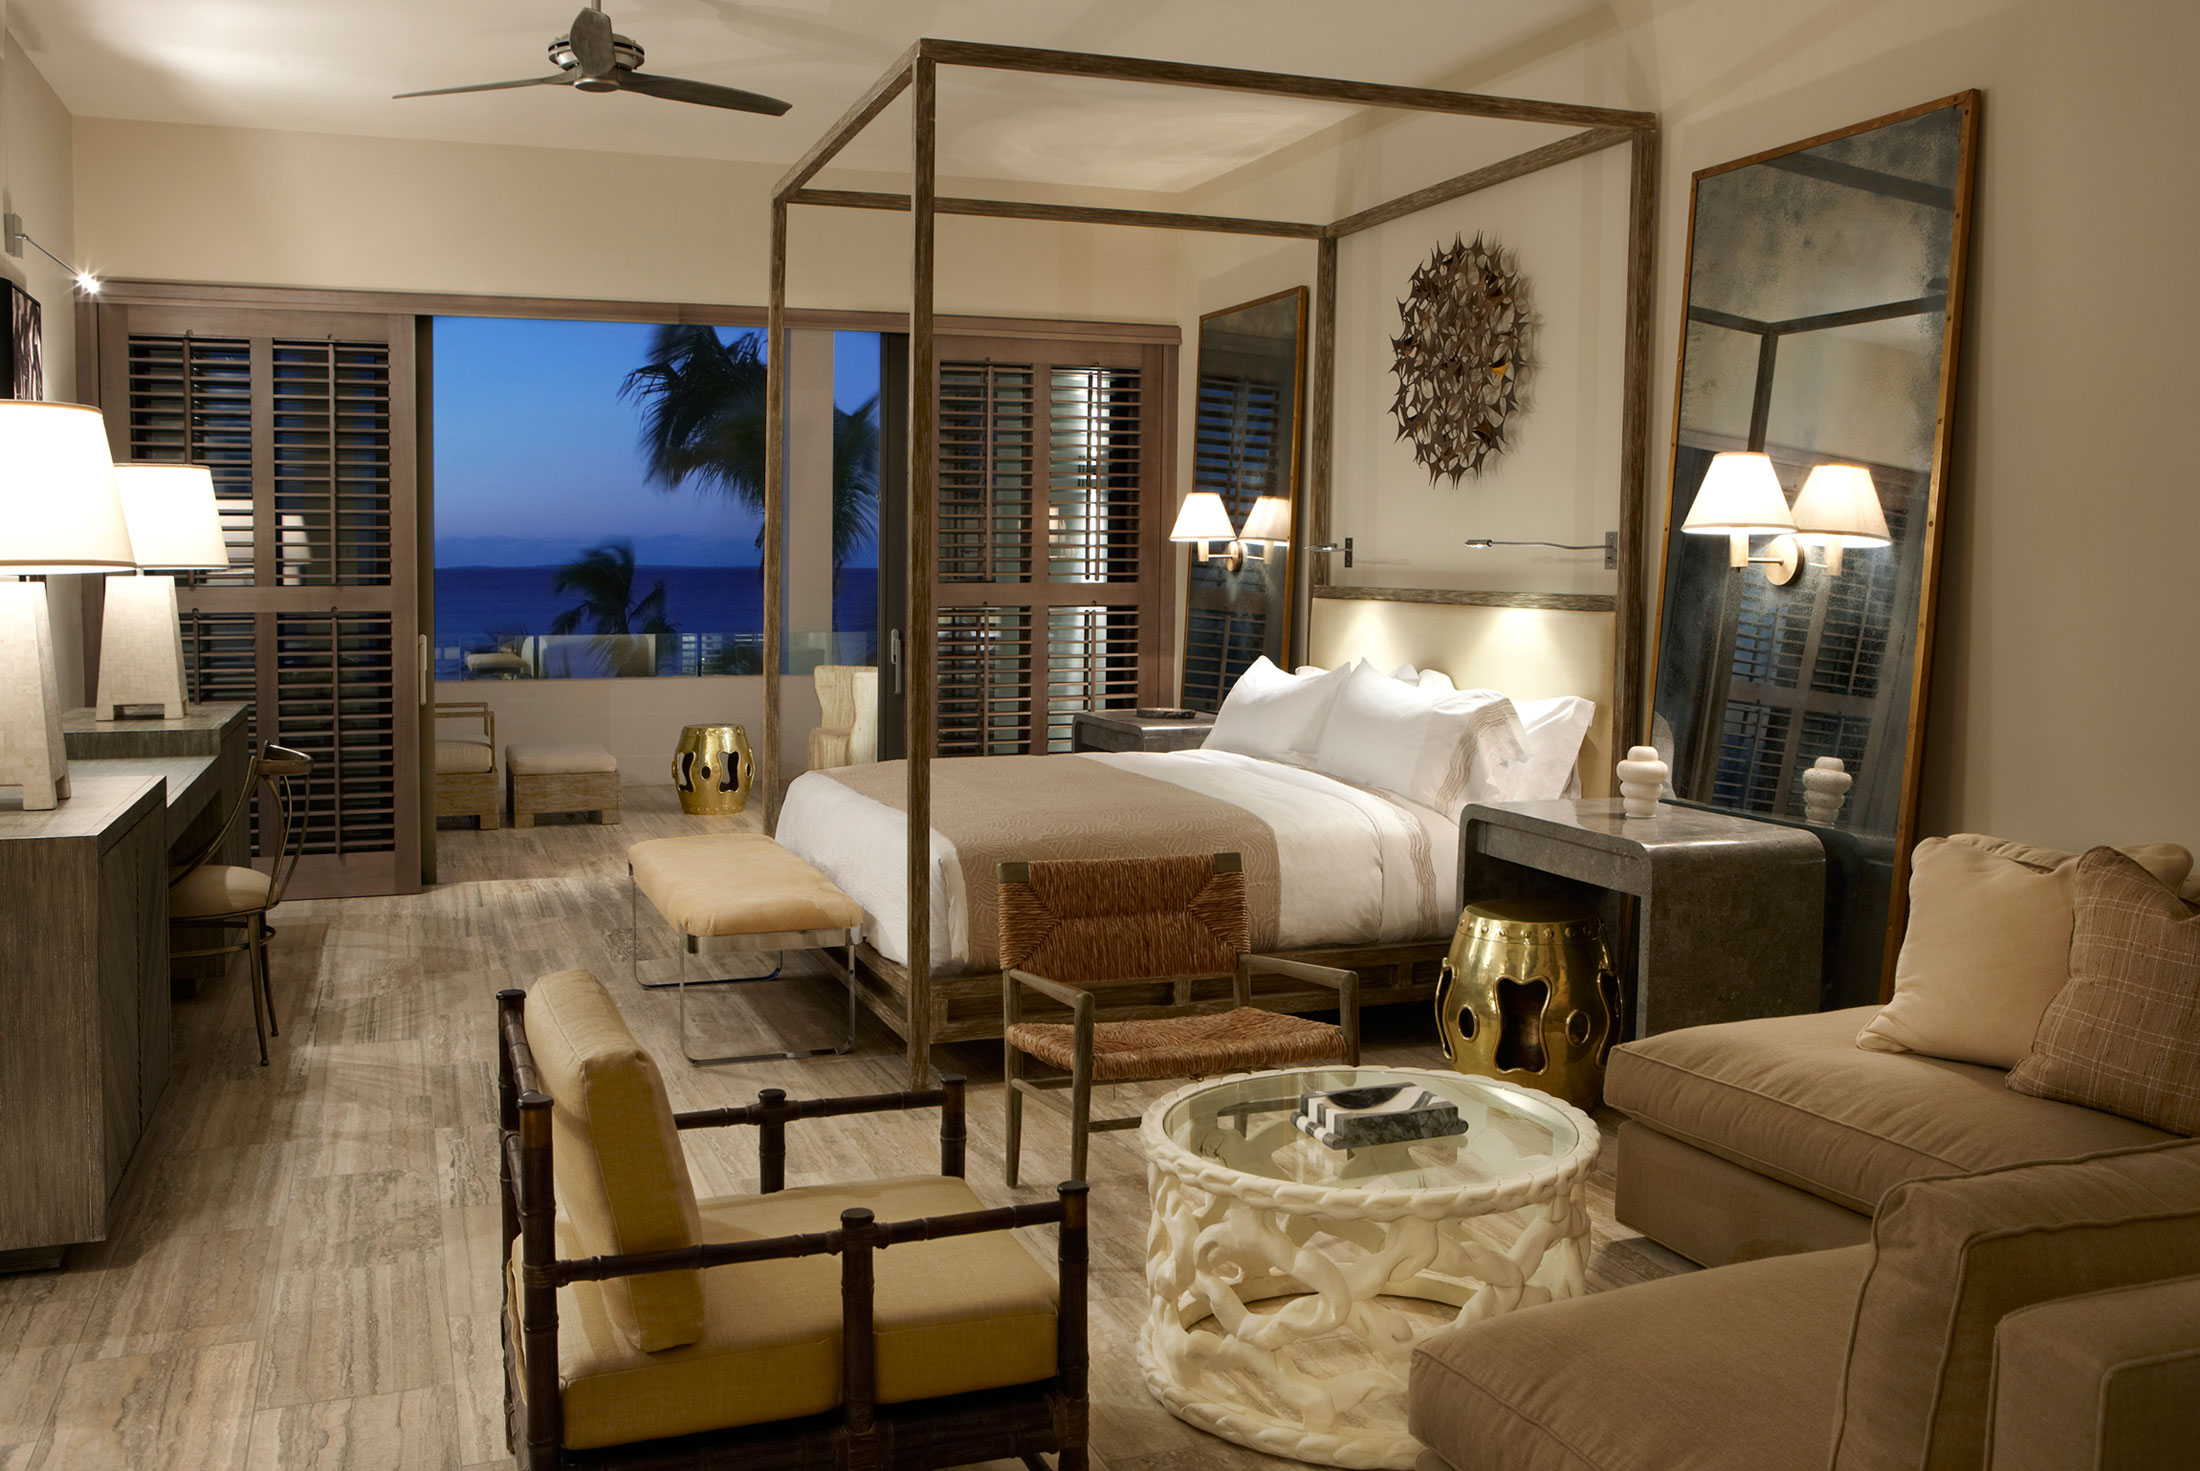 The Luxury Caribbean Resort, Viceroy Anguilla | Architecture & Design